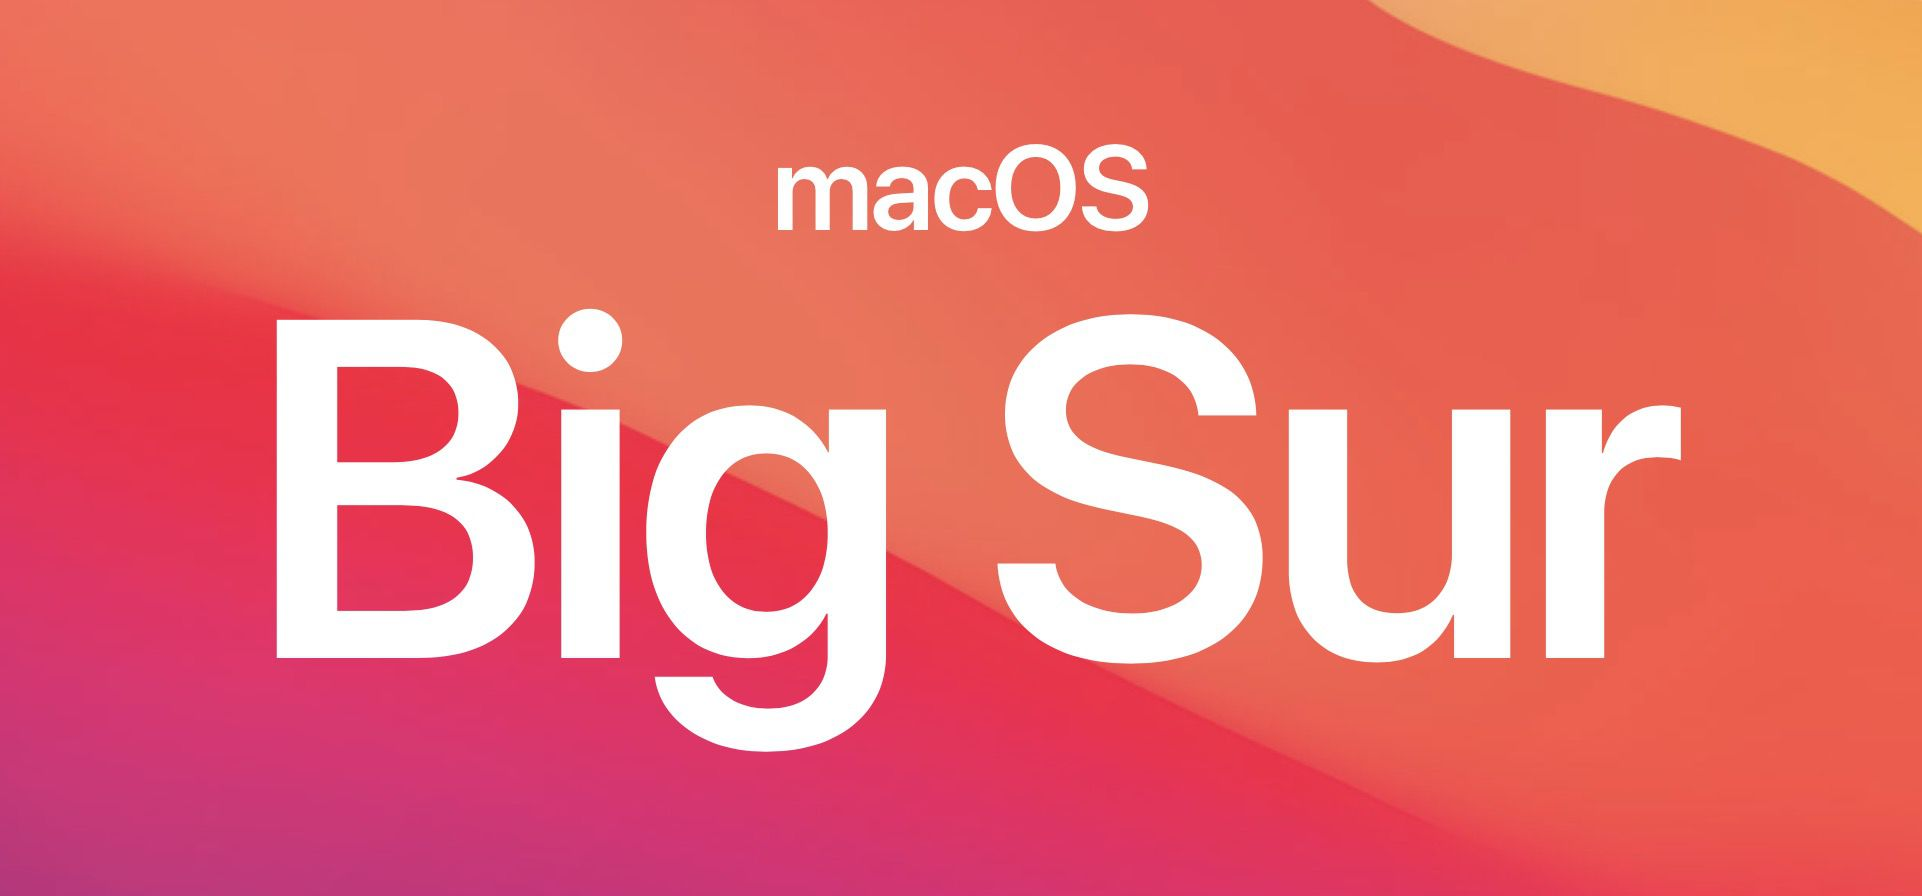 macOS Big Sur: Everything We Know | MacRumors